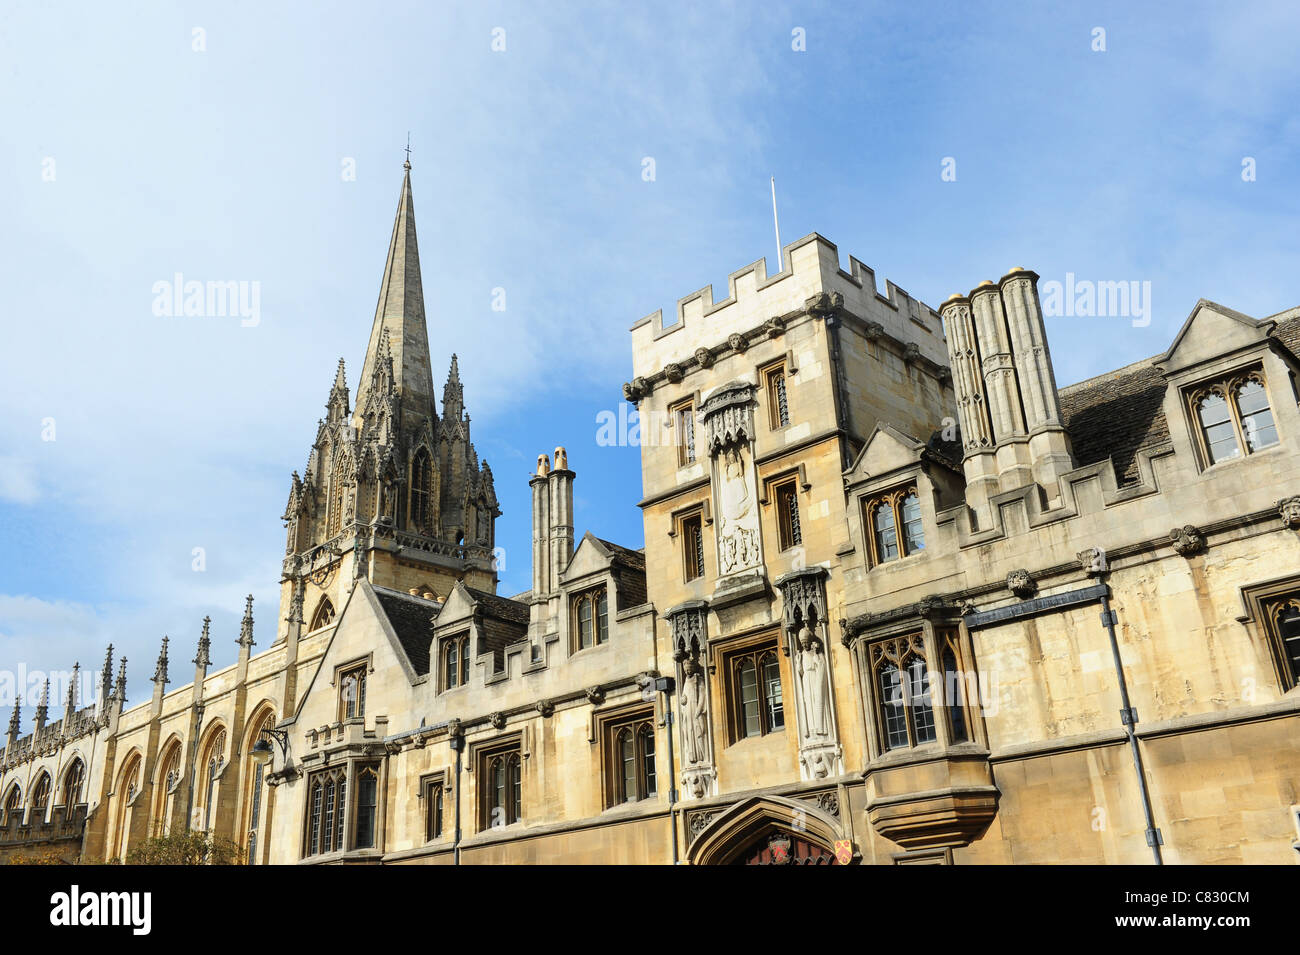 University Church spire of St Mary the Virgin on the High Street and All Souls College Oxford England Uk - Stock Image